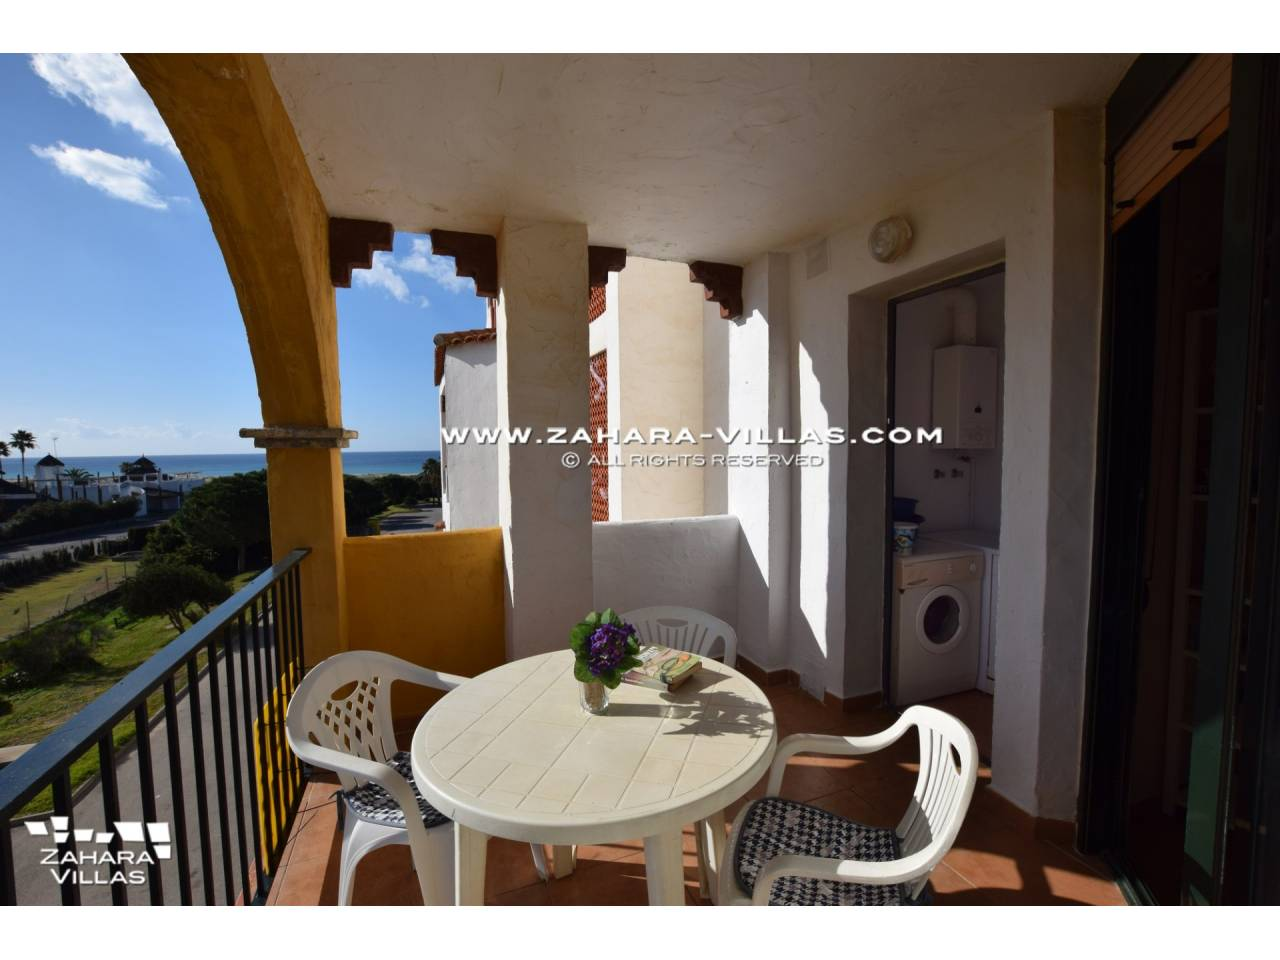 Imagen 1 de Apartment for sale in Zahara de los Atunes